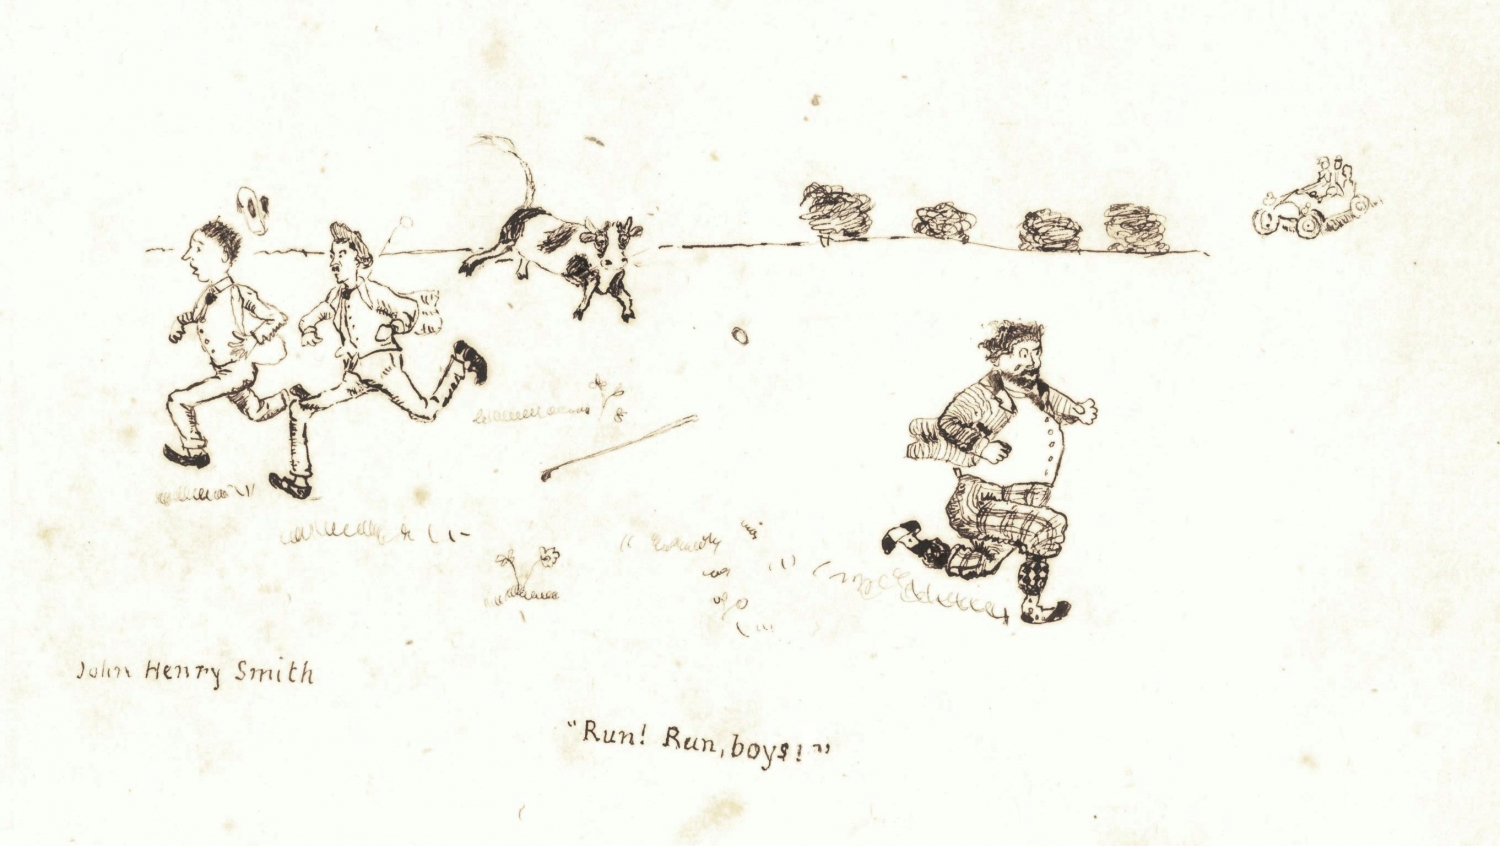 Sketch of men running from bull.